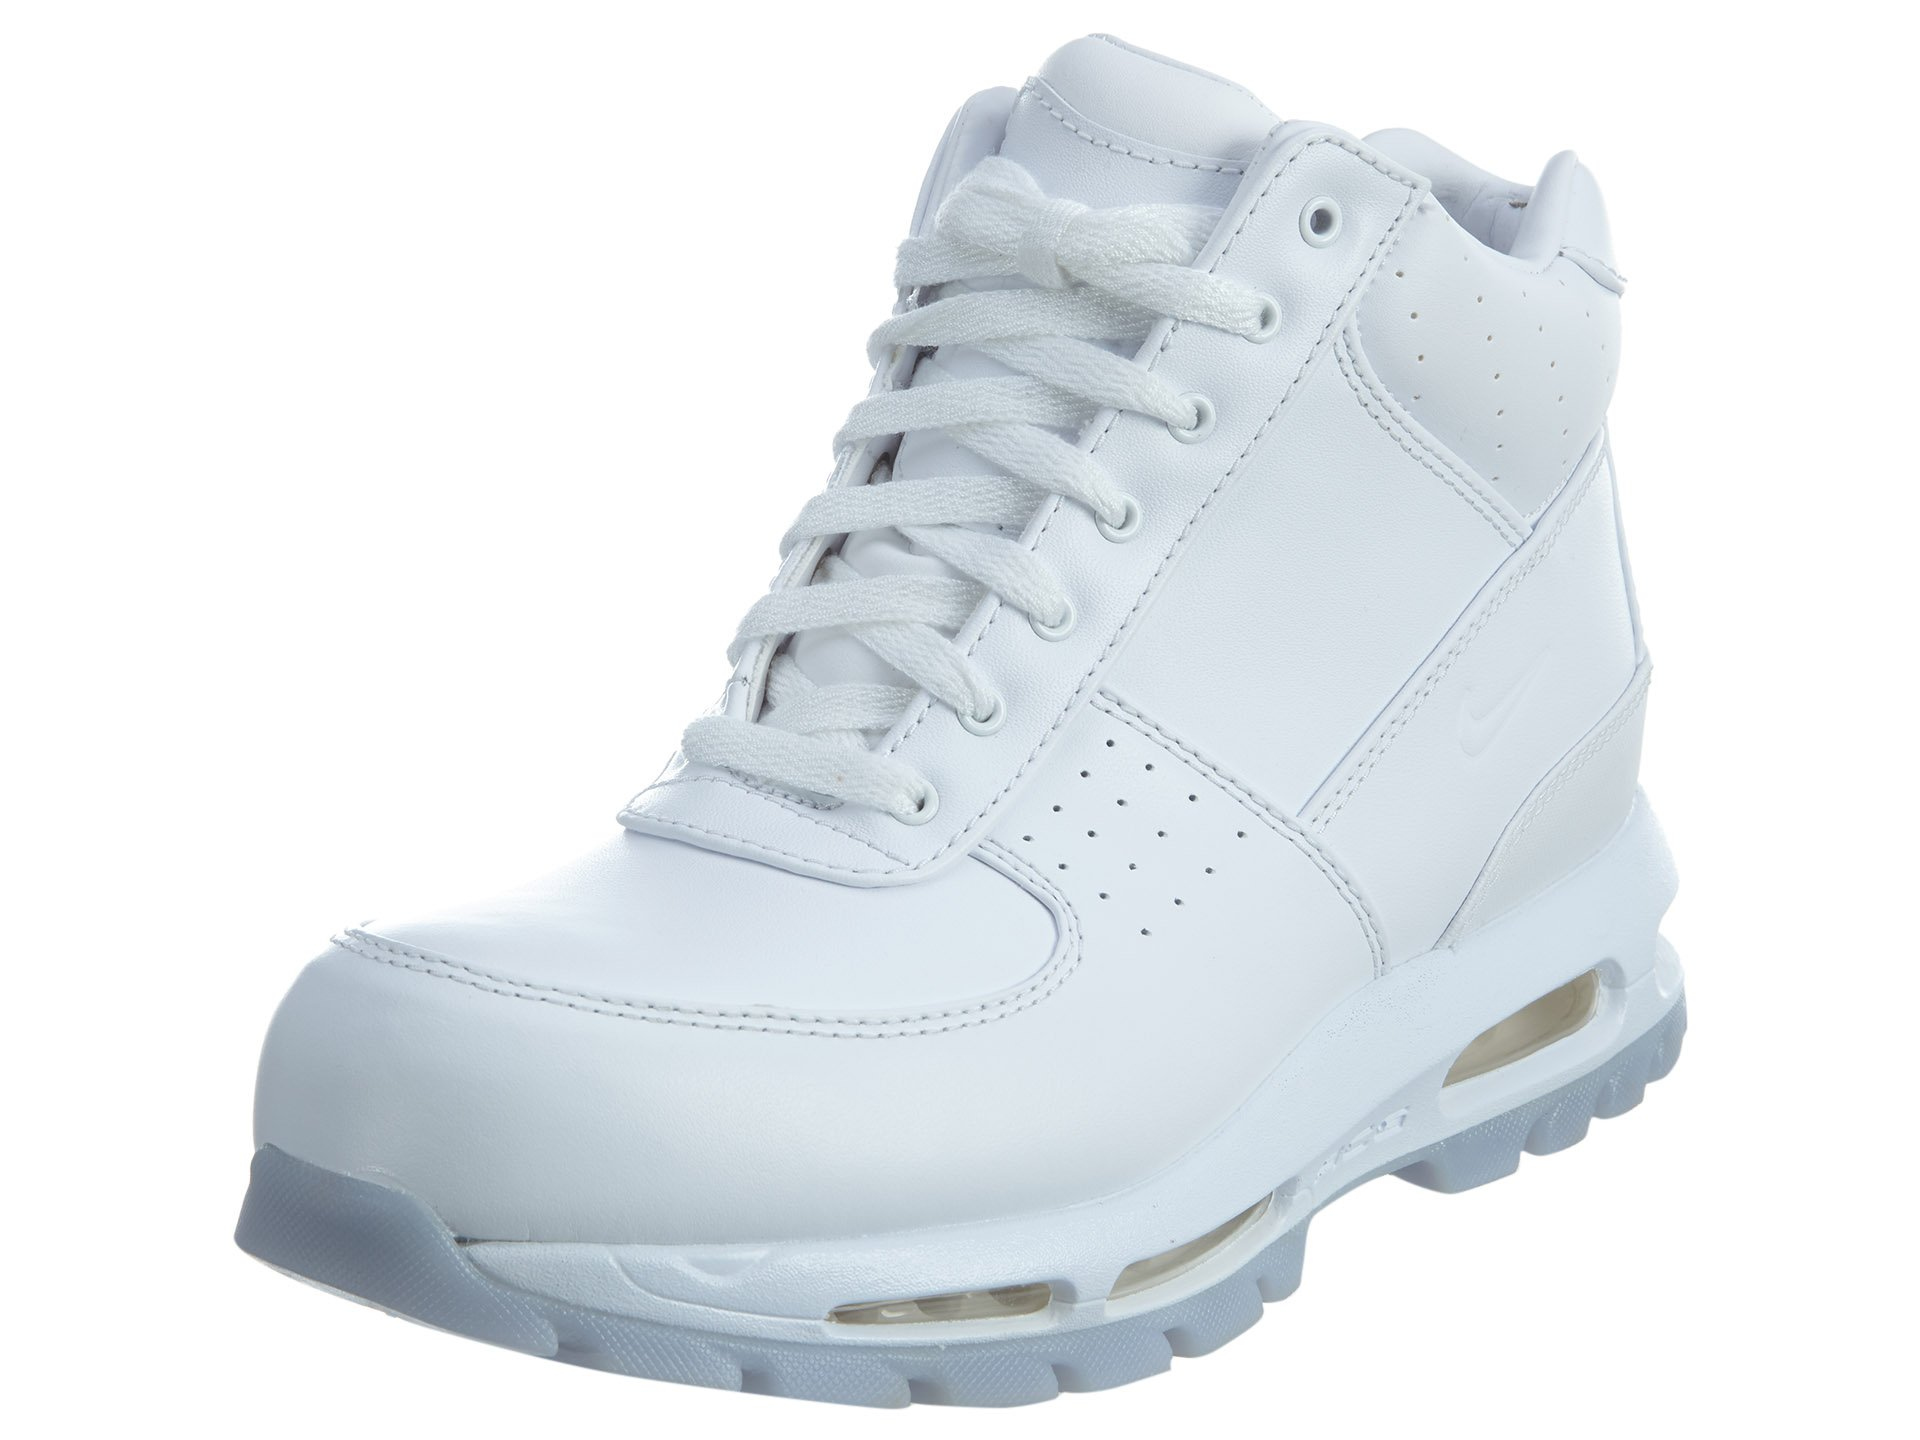 Nike Air Max Goadome Men's Boots White 865031 100 (11.5 D(M) US)